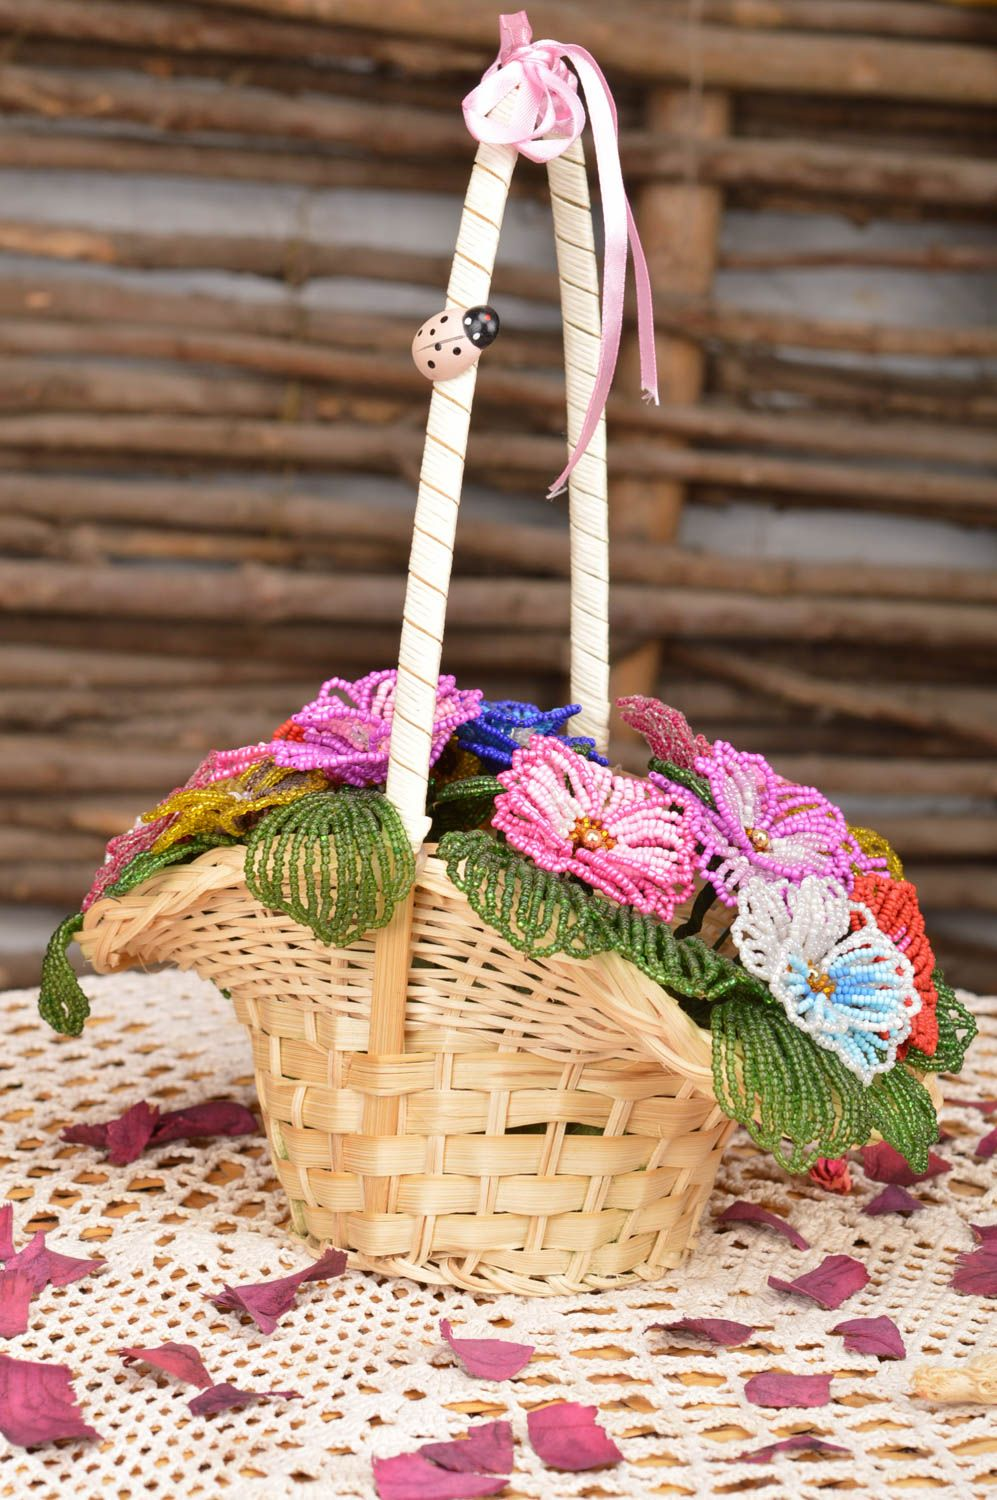 Handmade decorative basket with artificial beaded colorful flowers for interior photo 1